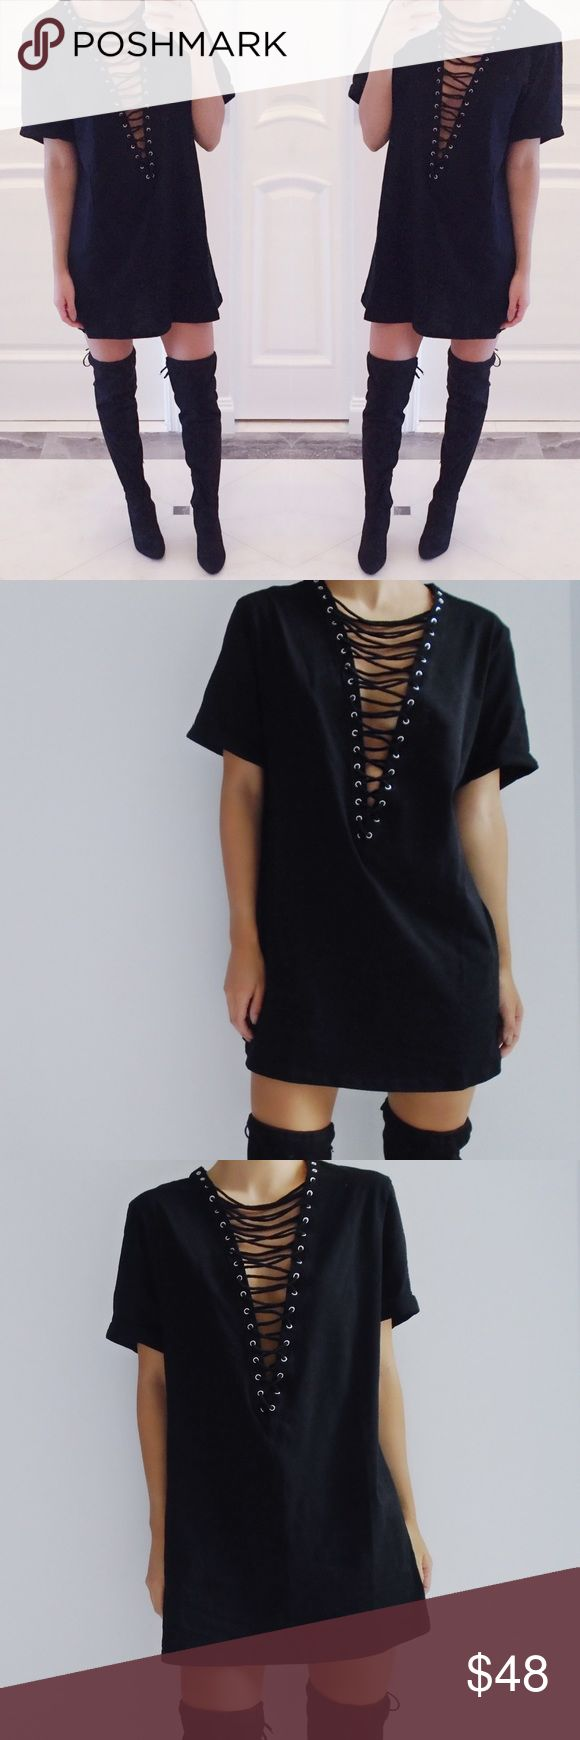 Black t shirt outfit tumblr - Restocked Kendall Lace Up V Neck Shirt Dress Short Sleeve Lace Up